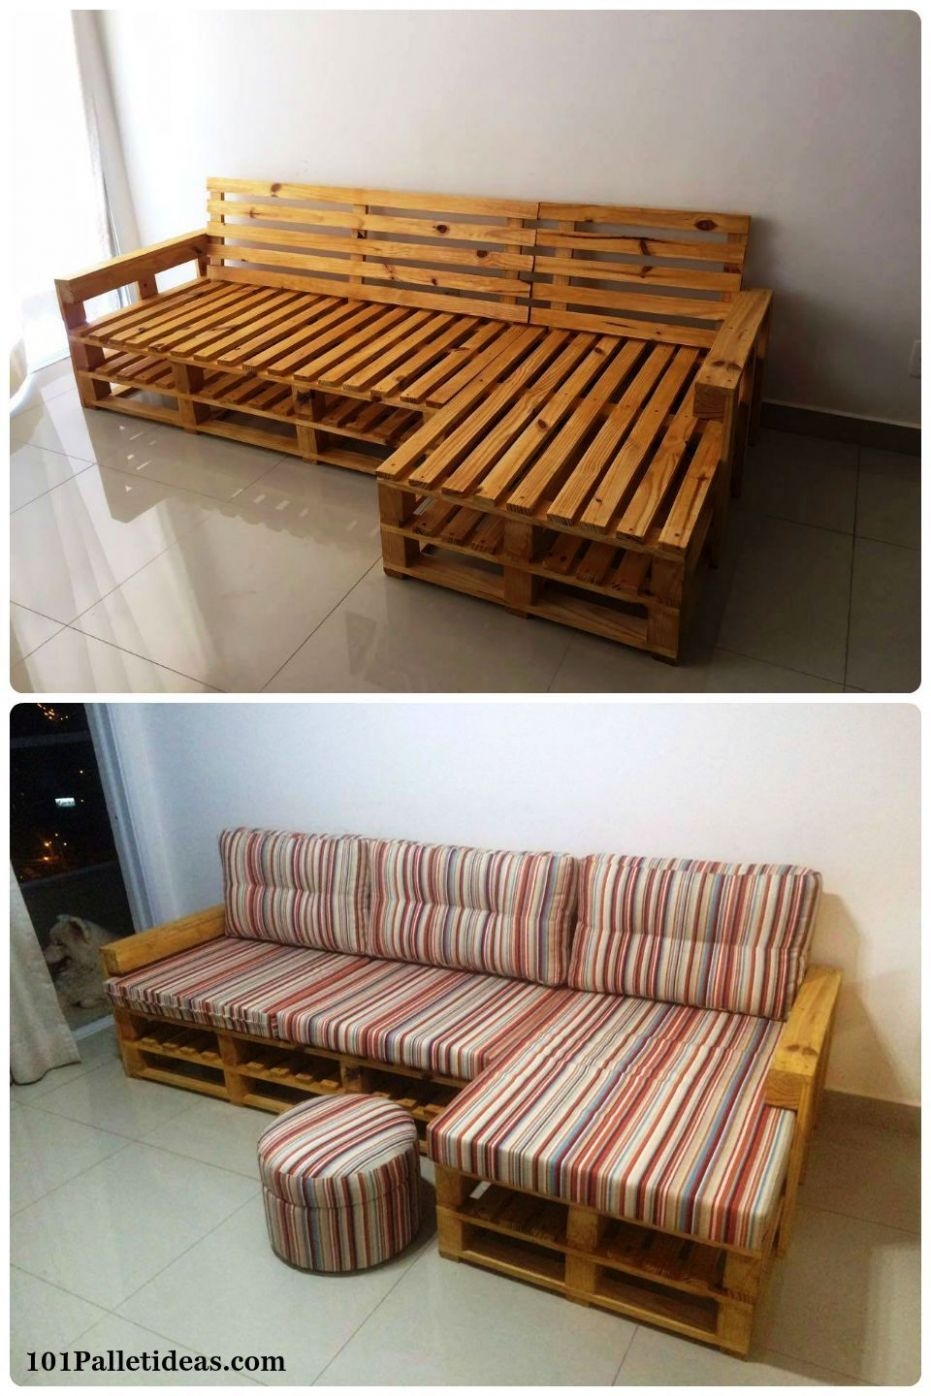 12 Pallet Ideas You Can DIY for Your Home | Muebles para casa ..